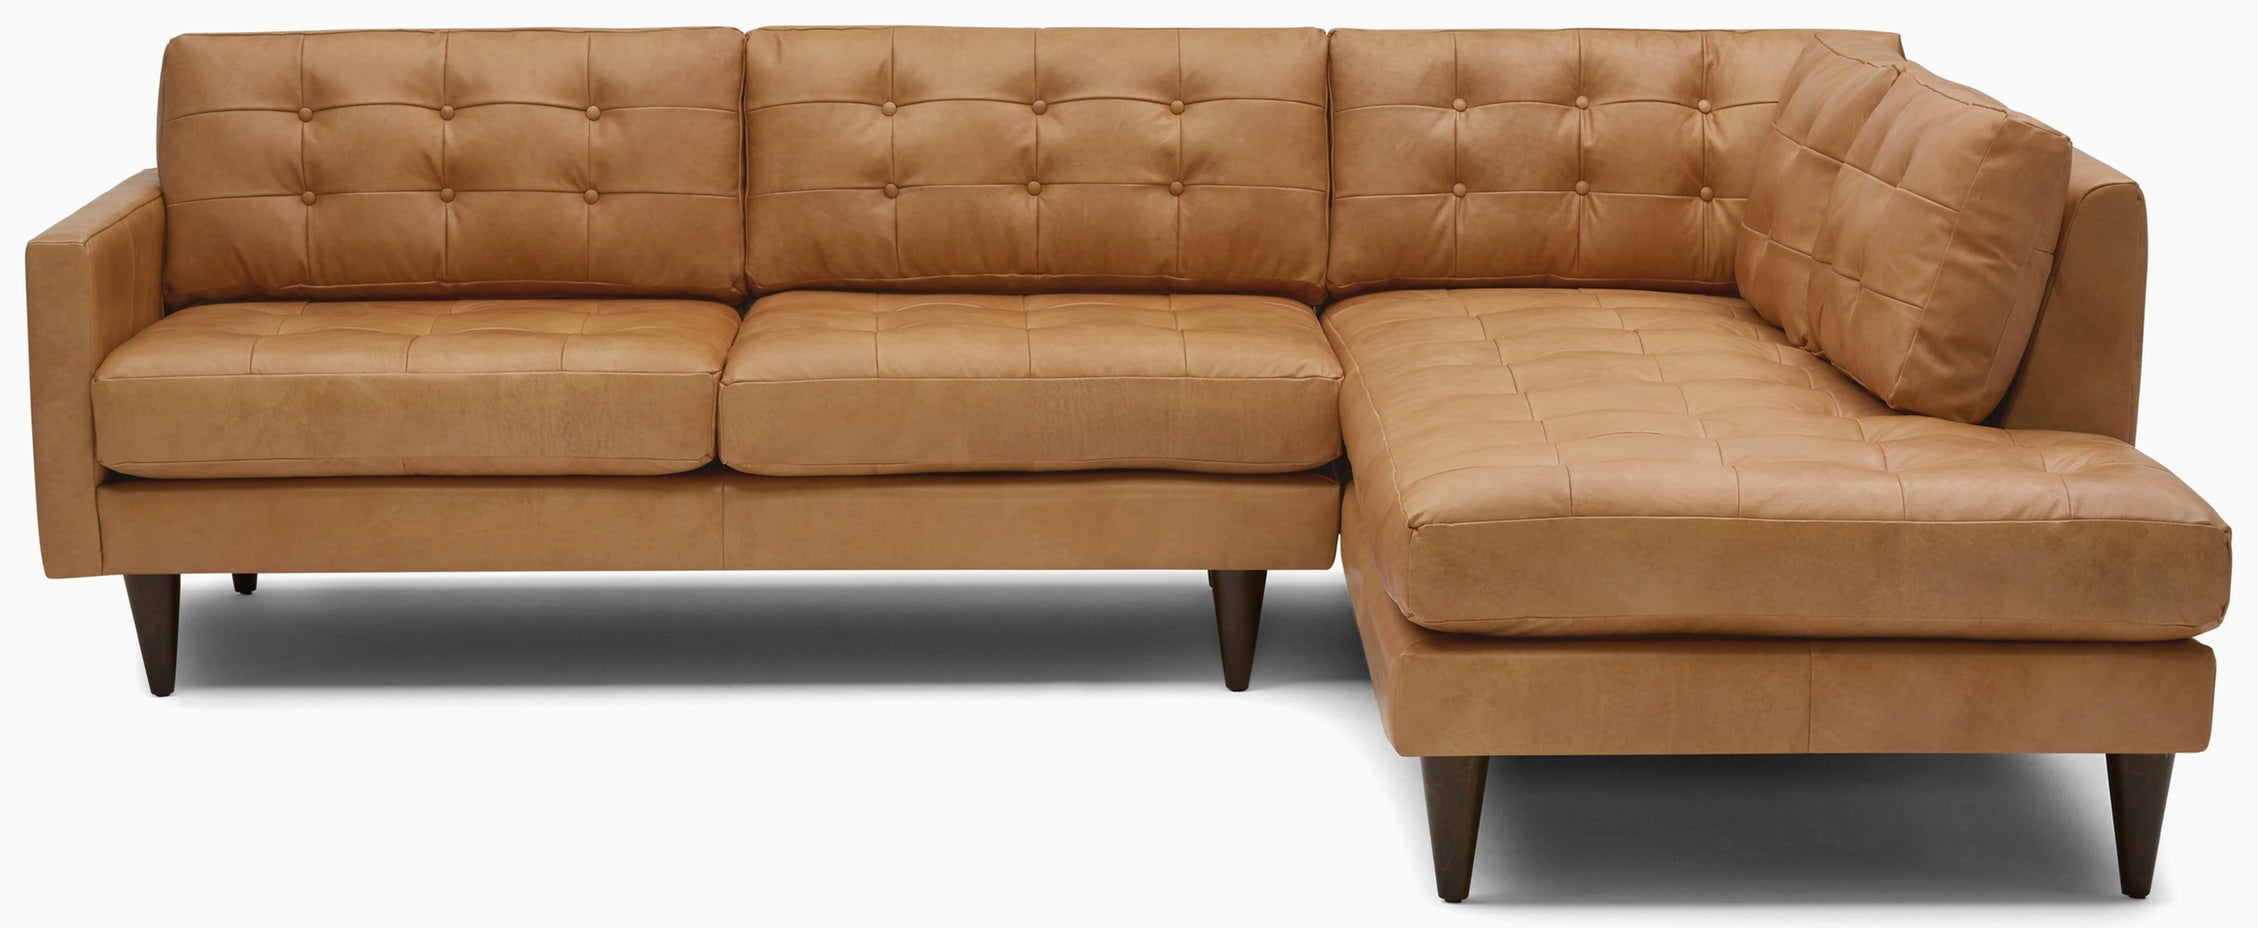 2581-CL044-WS03-eliot-leather-sectional-with-bumper-(2-piece)-santiago-camel-t1-1_t.png